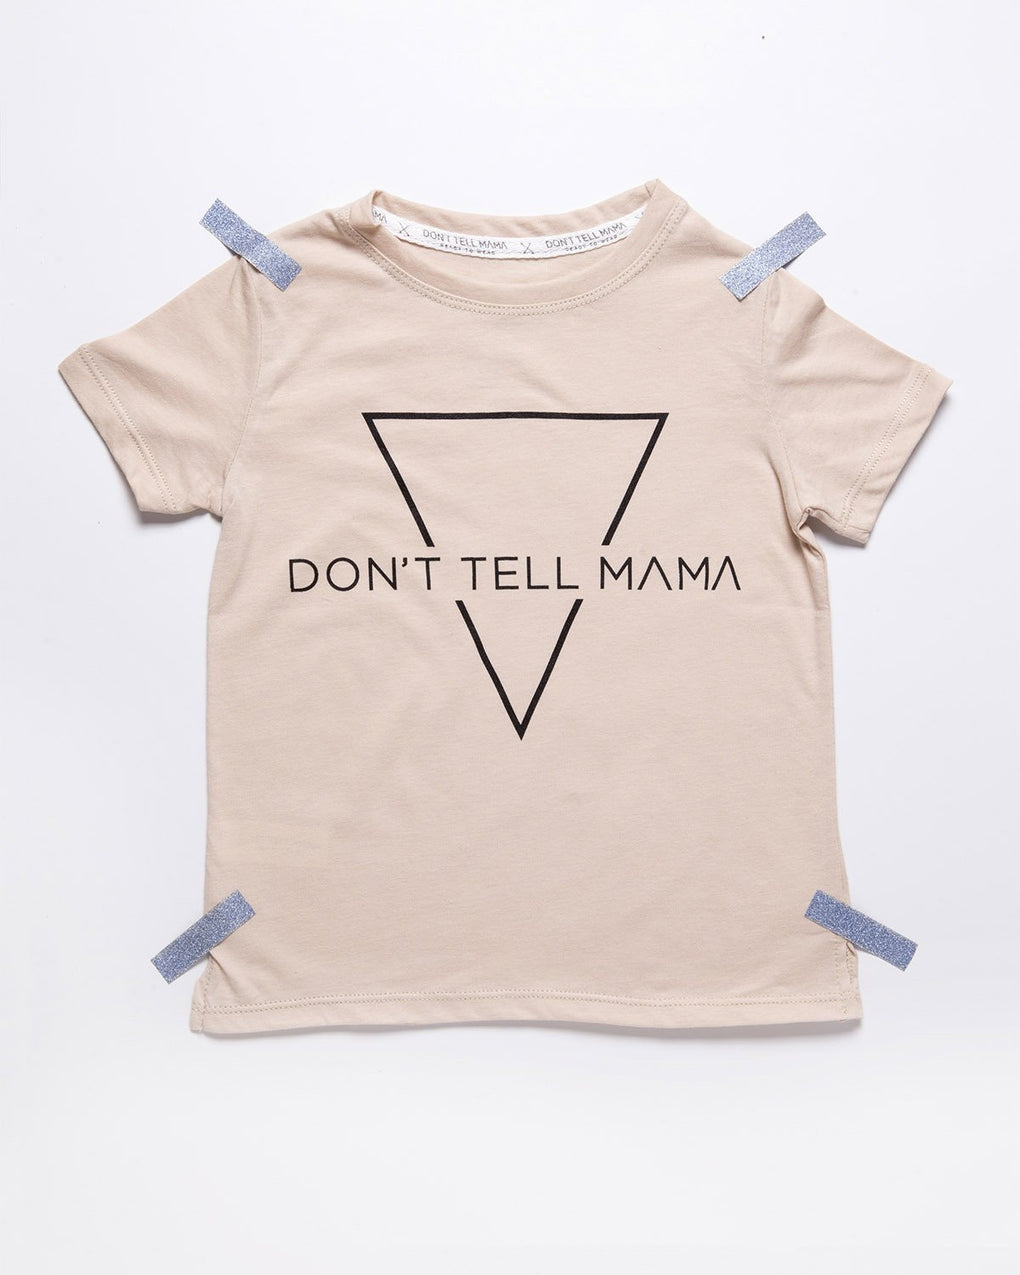 SHORTIES MAMA TRIANGLE // DON'T TELL MAMA